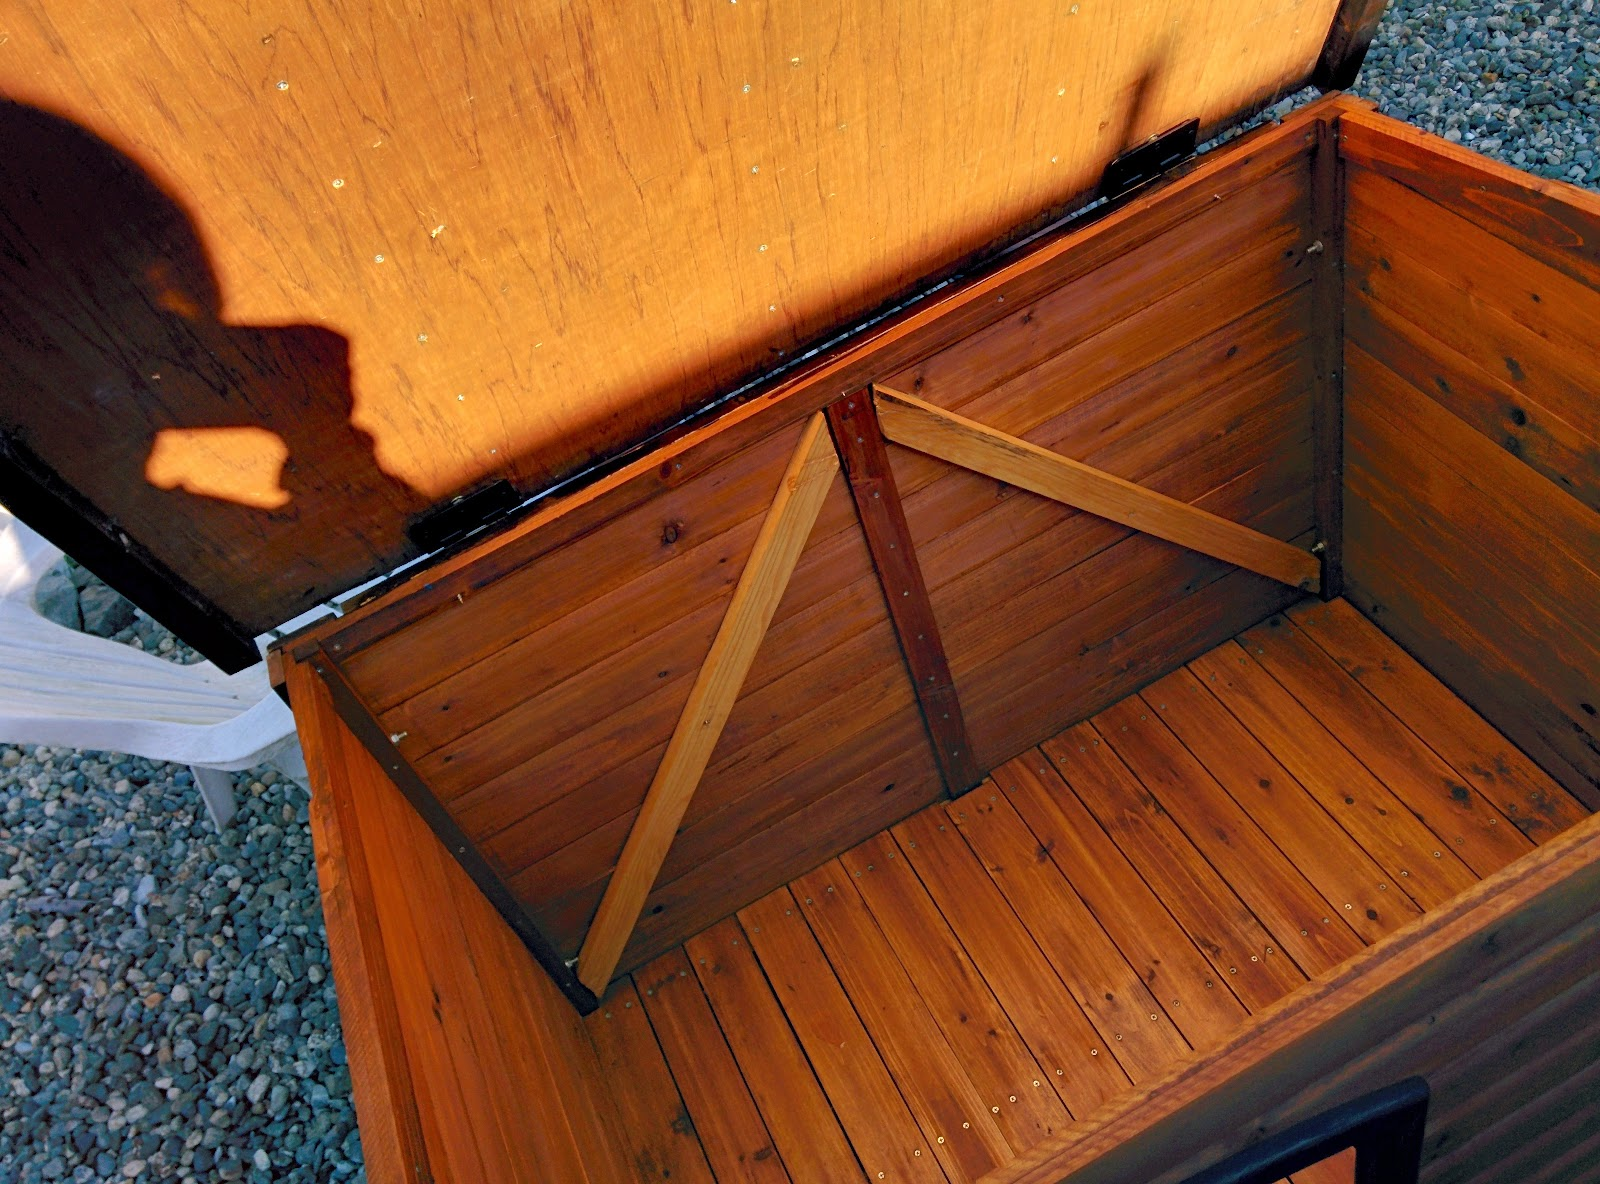 Hinged lid on doghouse/duckhouse